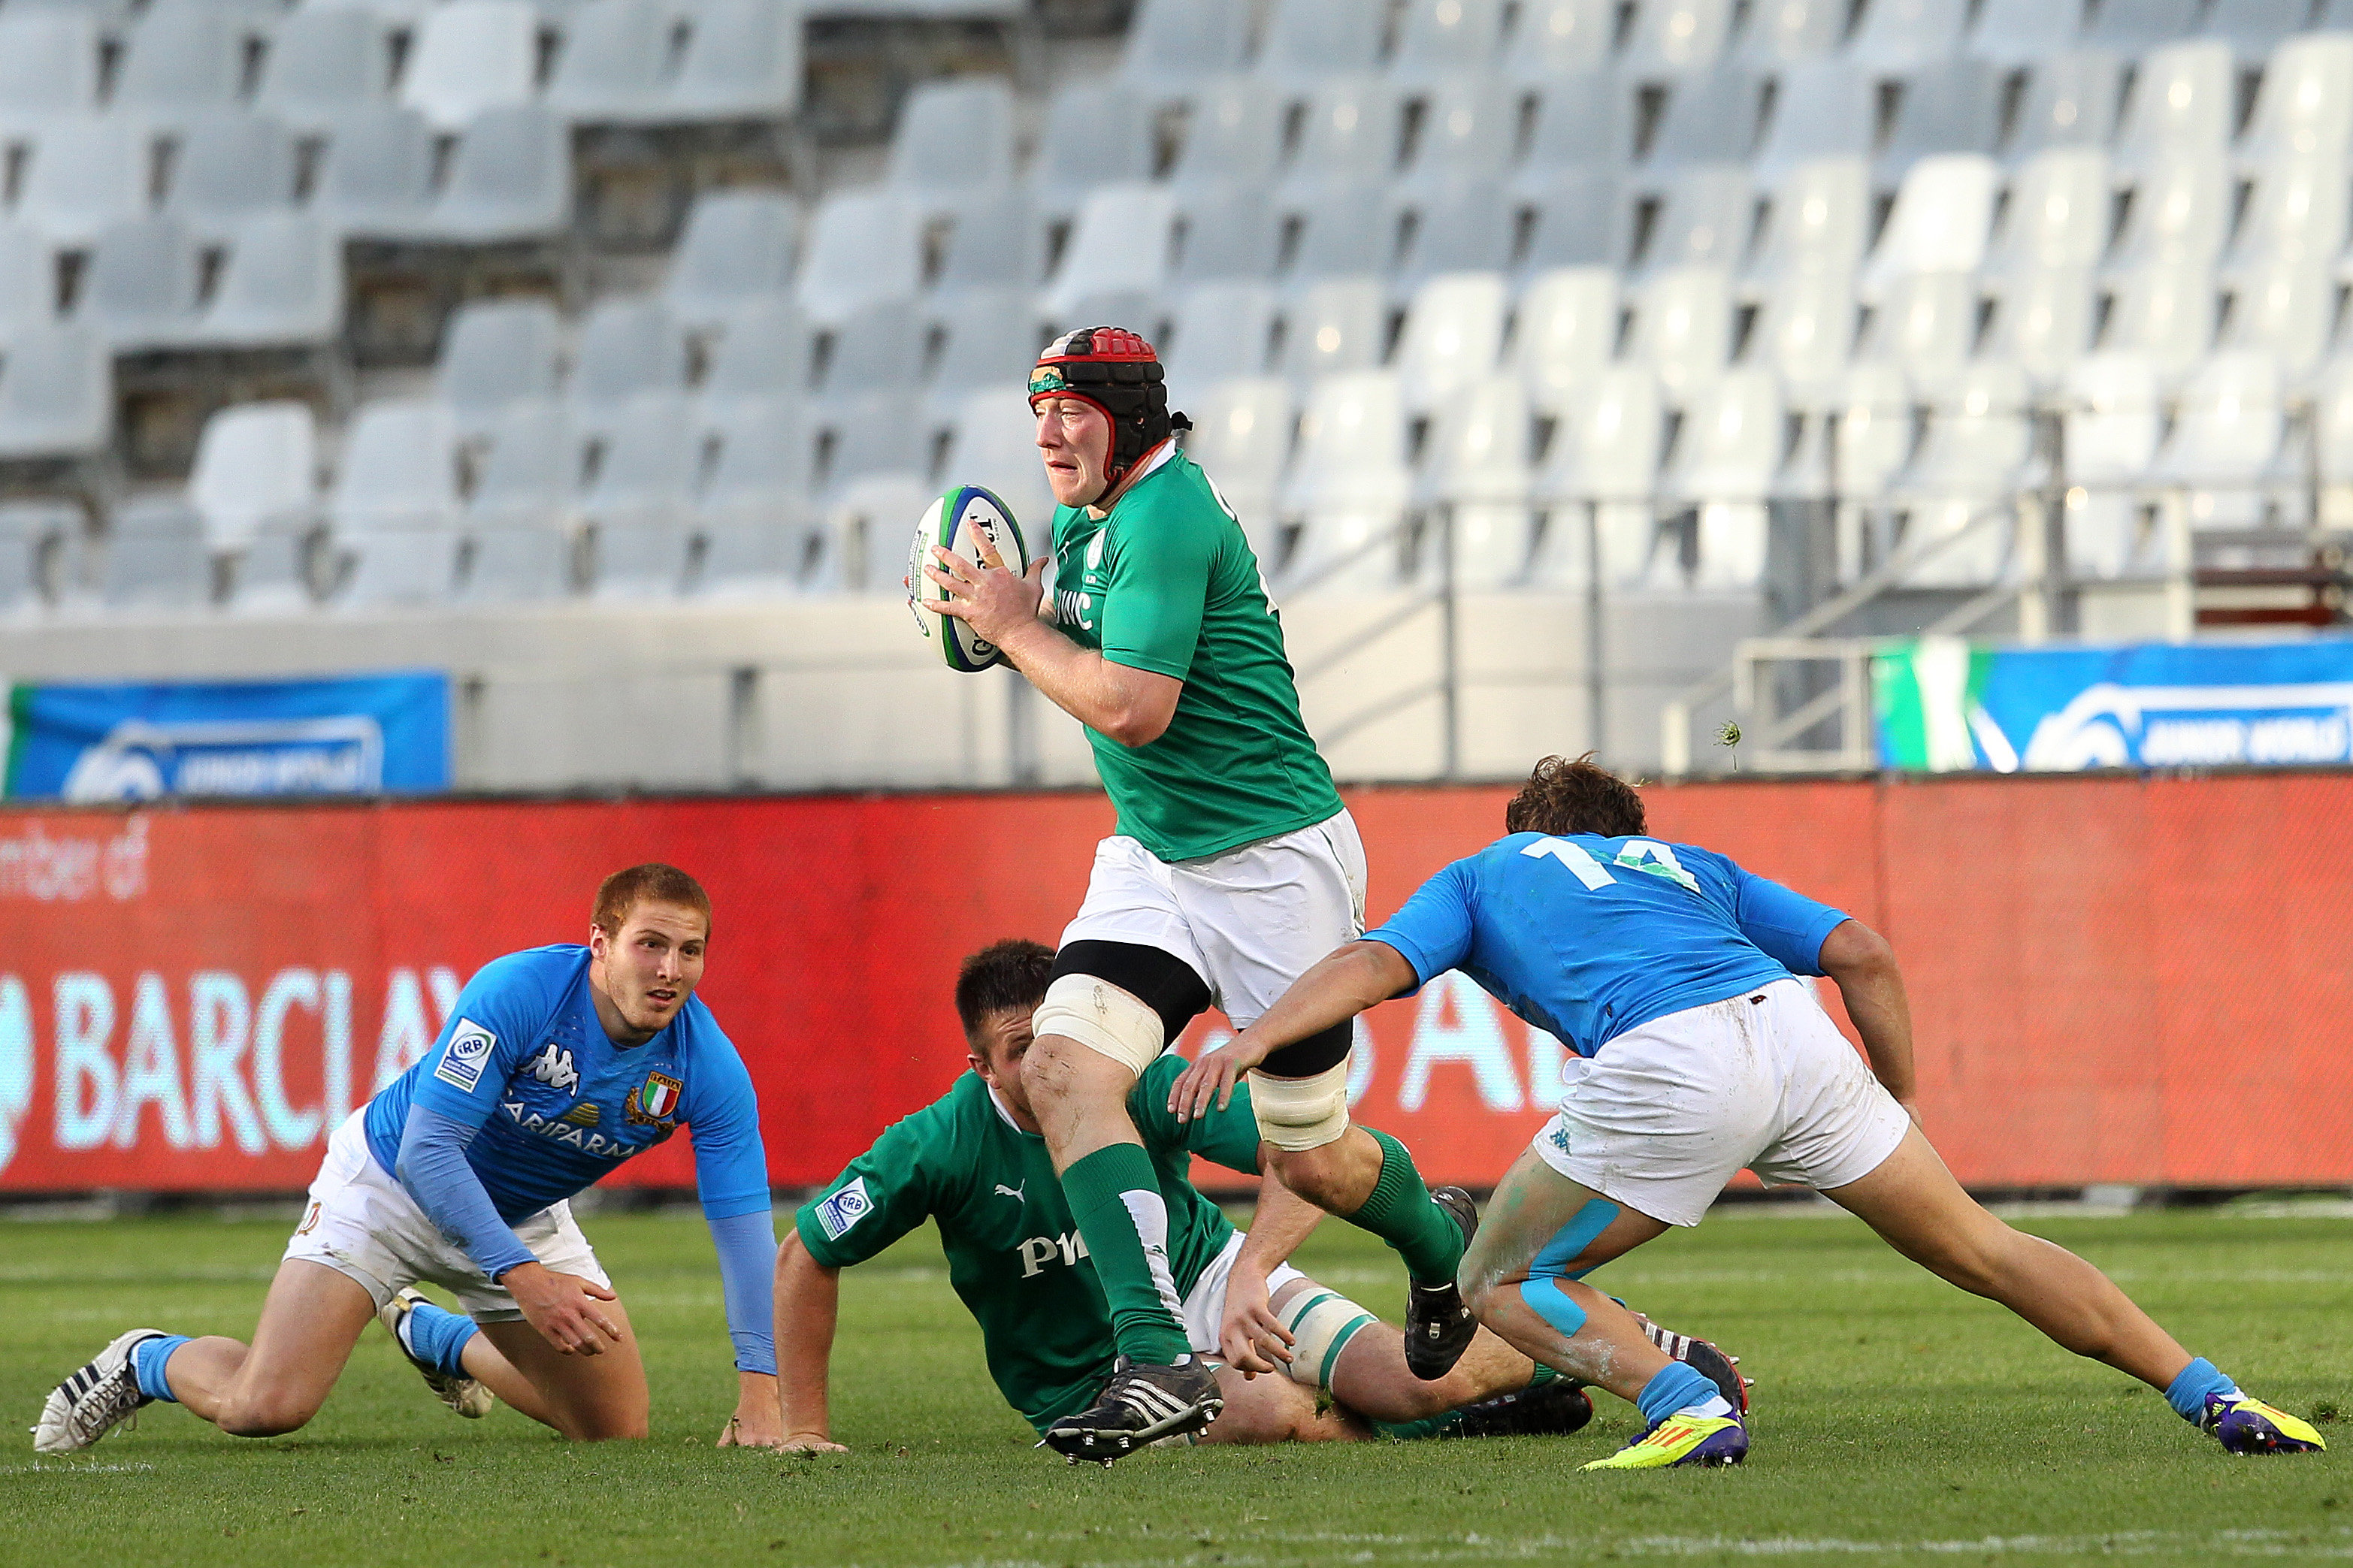 Munster's Shane Buckley breaks through the Italian defence